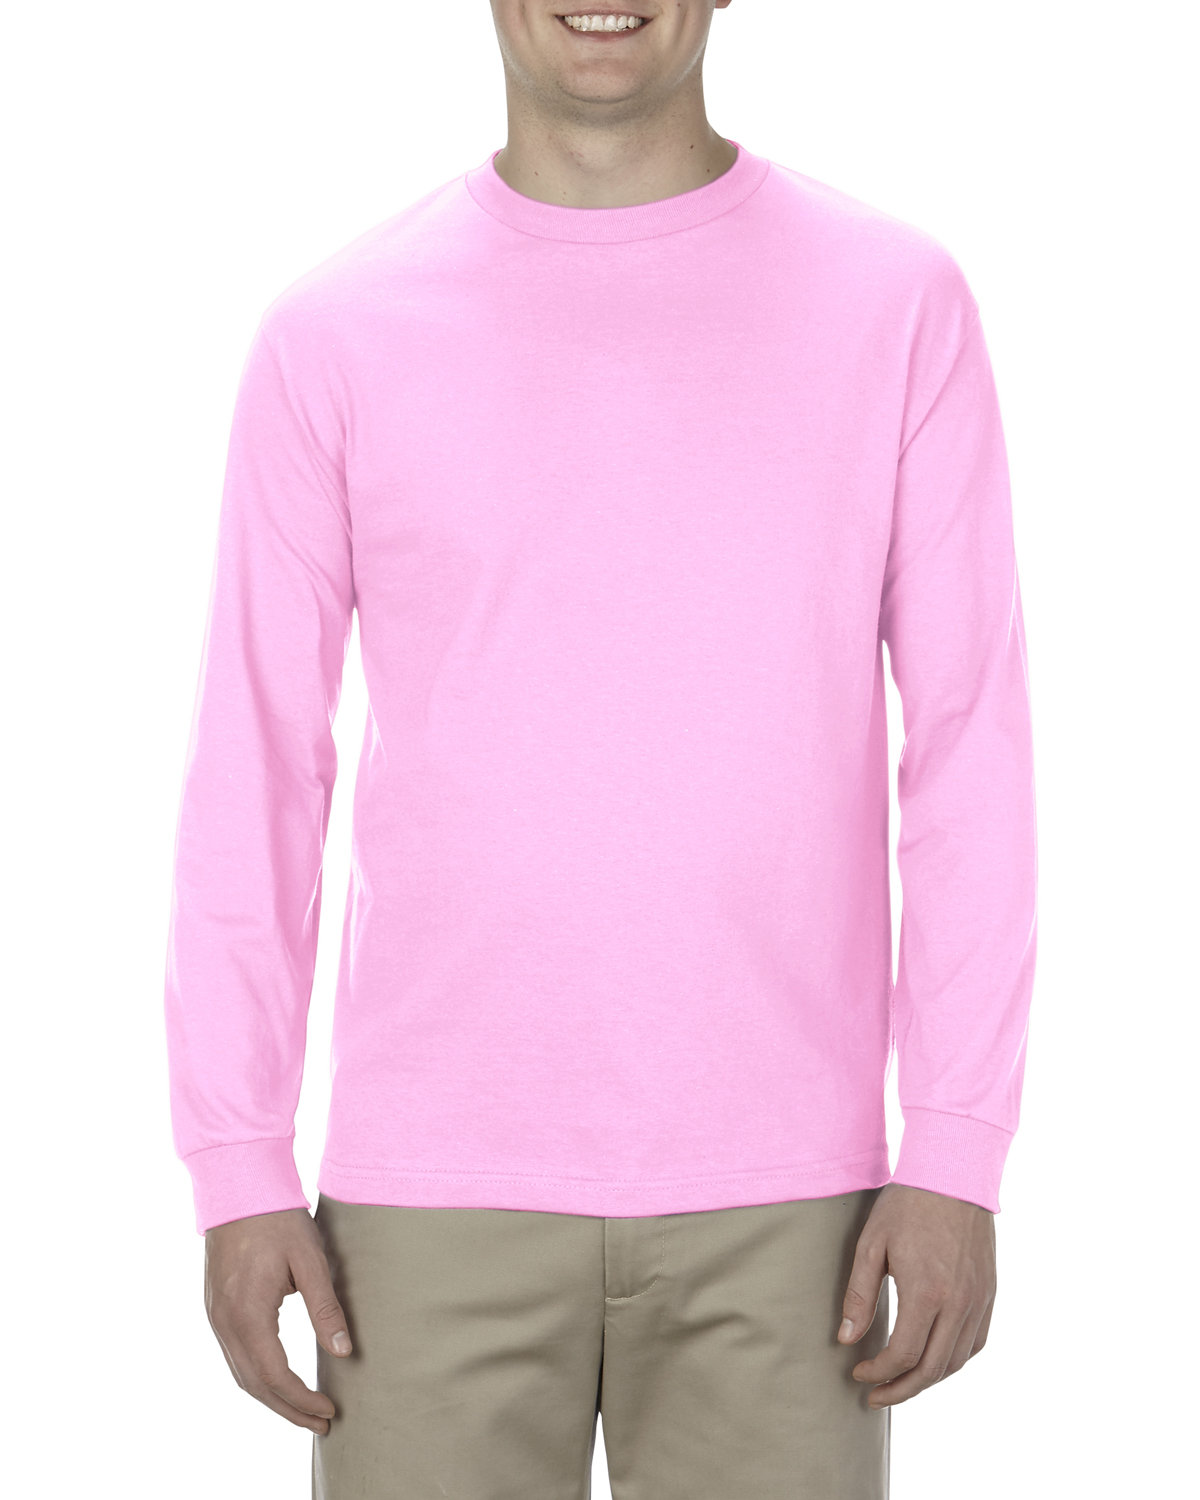 Alstyle Adult 6.0 oz., 100% Cotton Long-Sleeve T-Shirt PINK